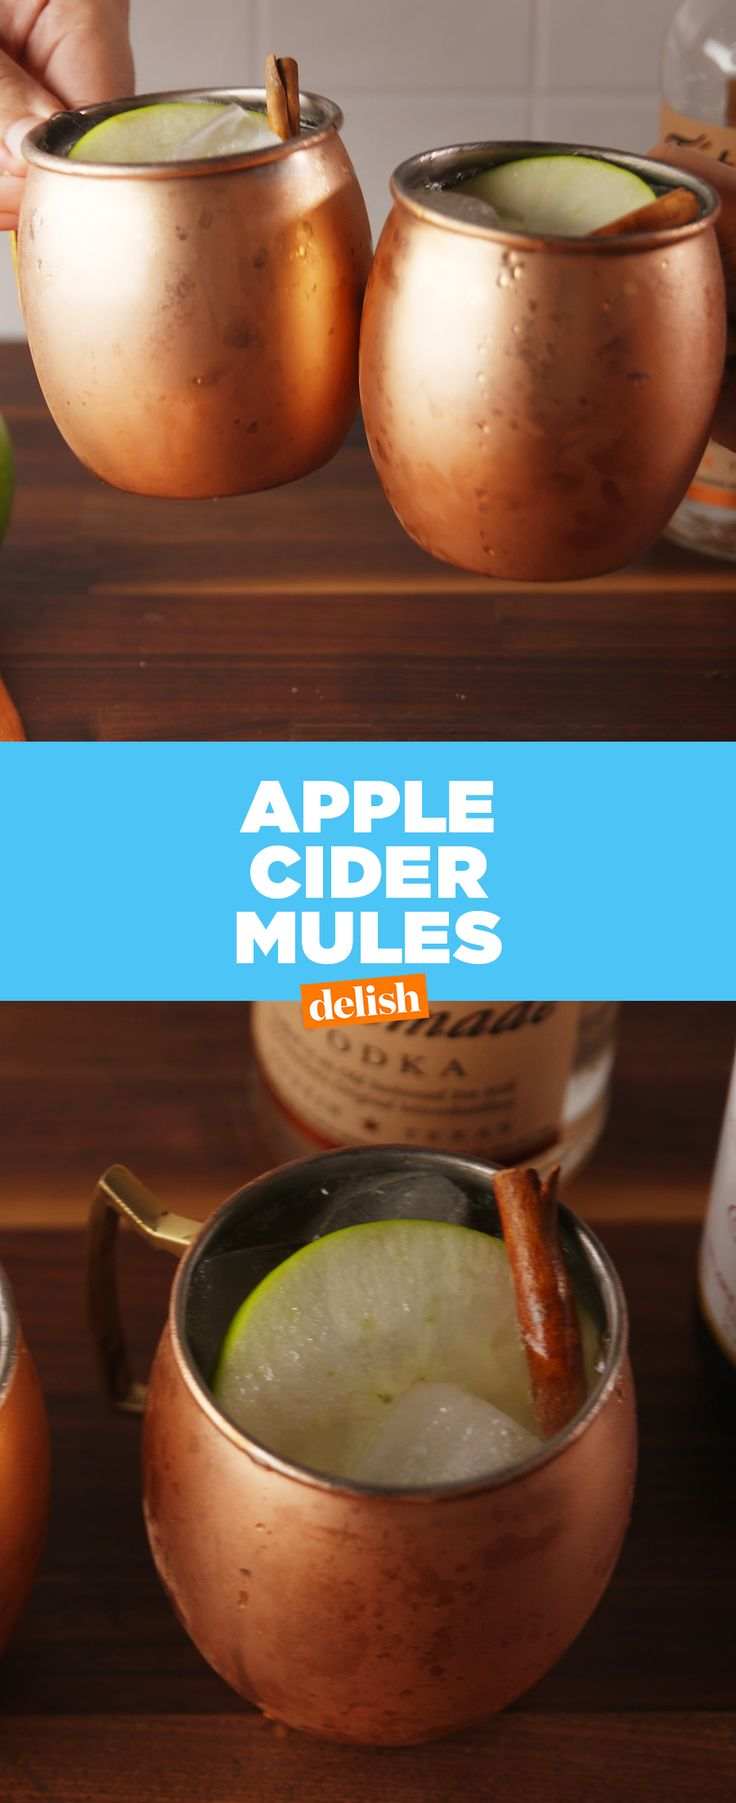 Moscow Mules + FALL = Apple Cider Mules. Get the recipe from Delish.com.